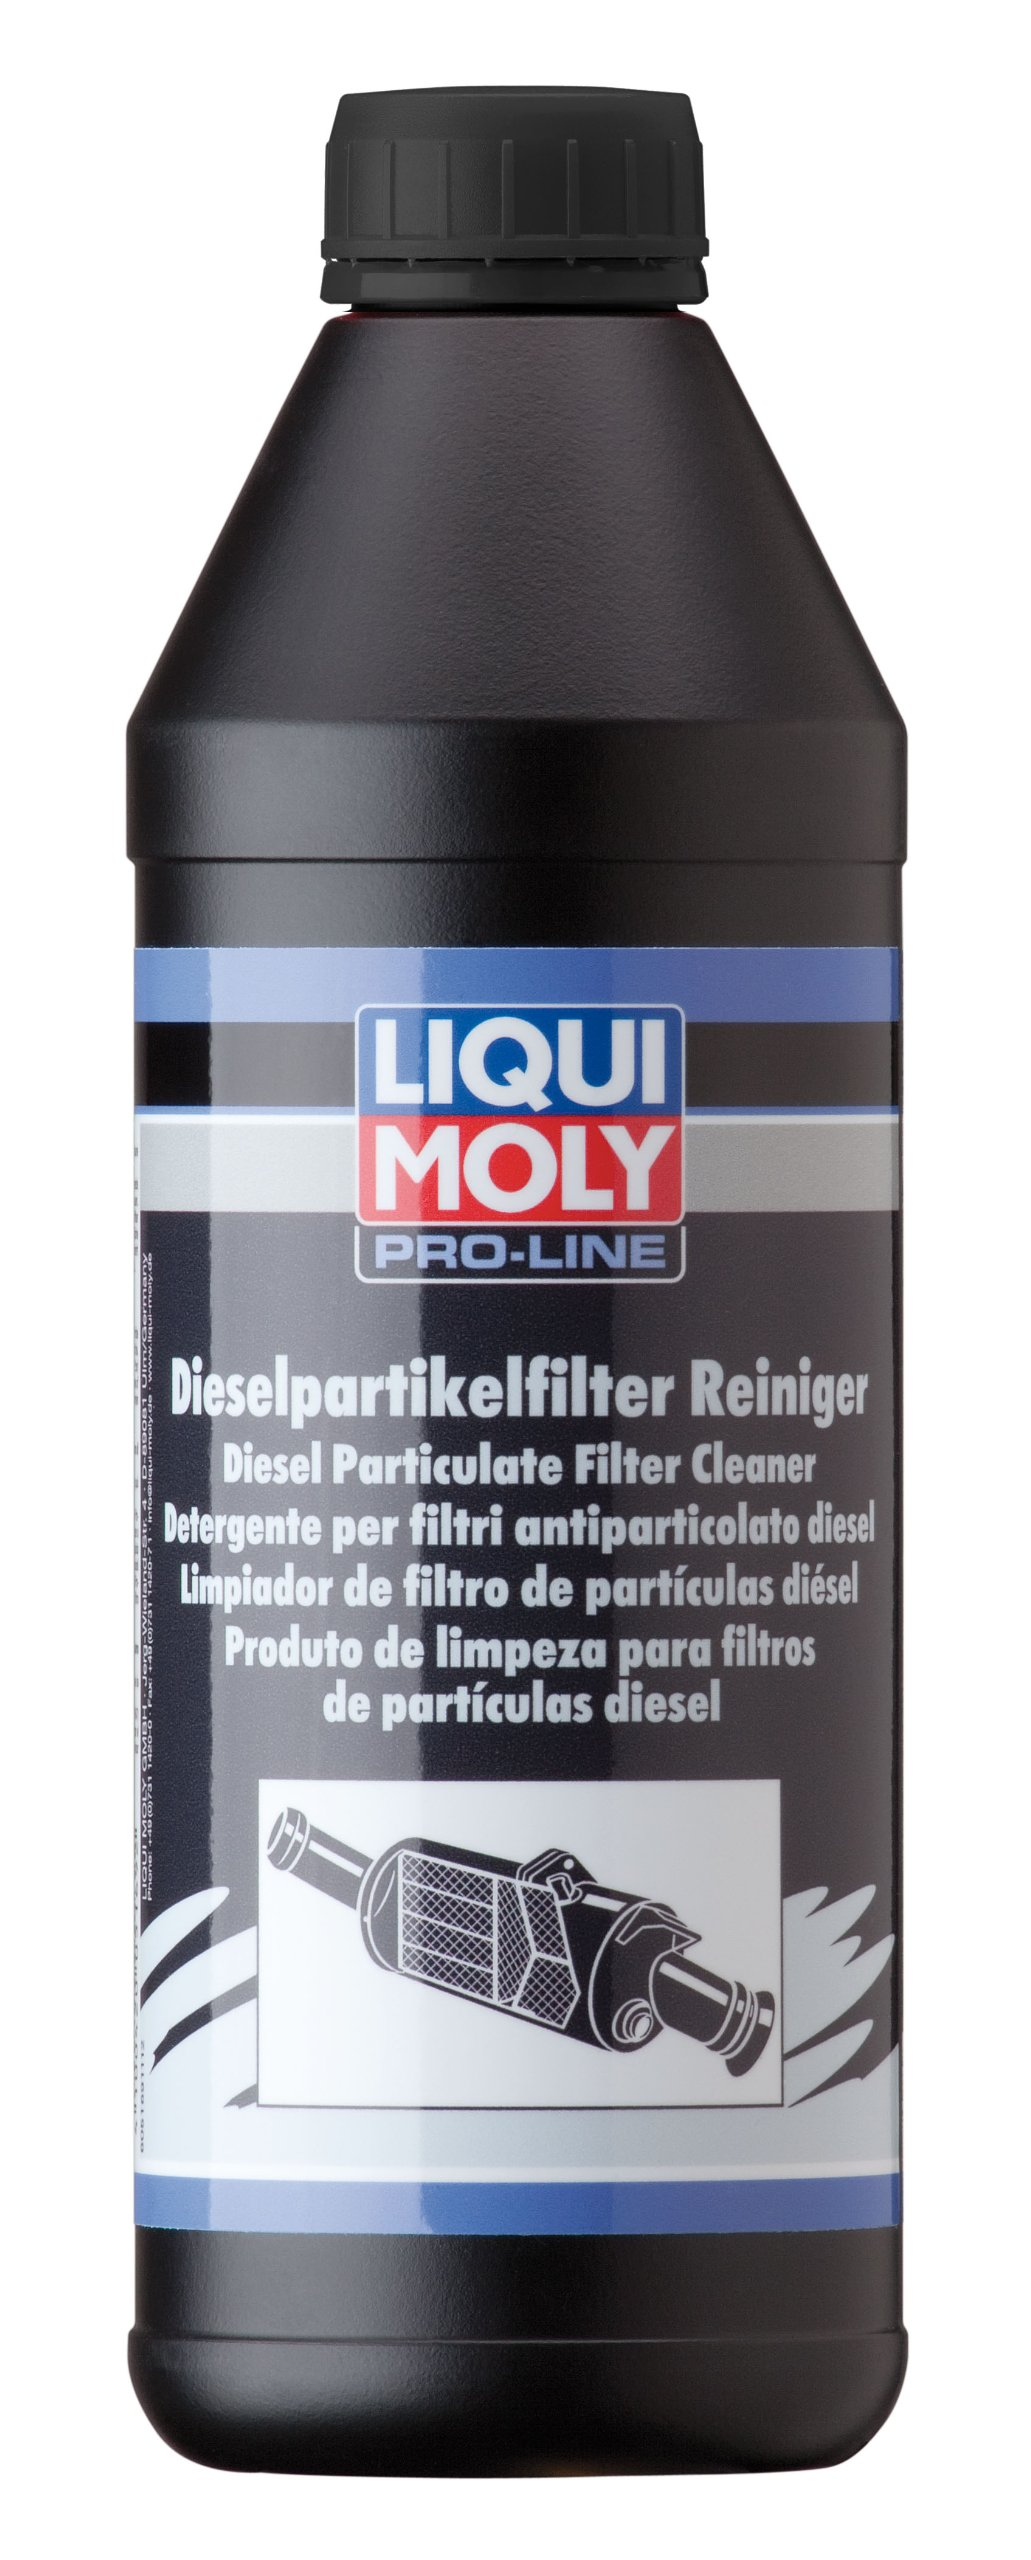 Liqui Moly 5169 Diesel Particulate Filter Cleaner - 1 Liter product image